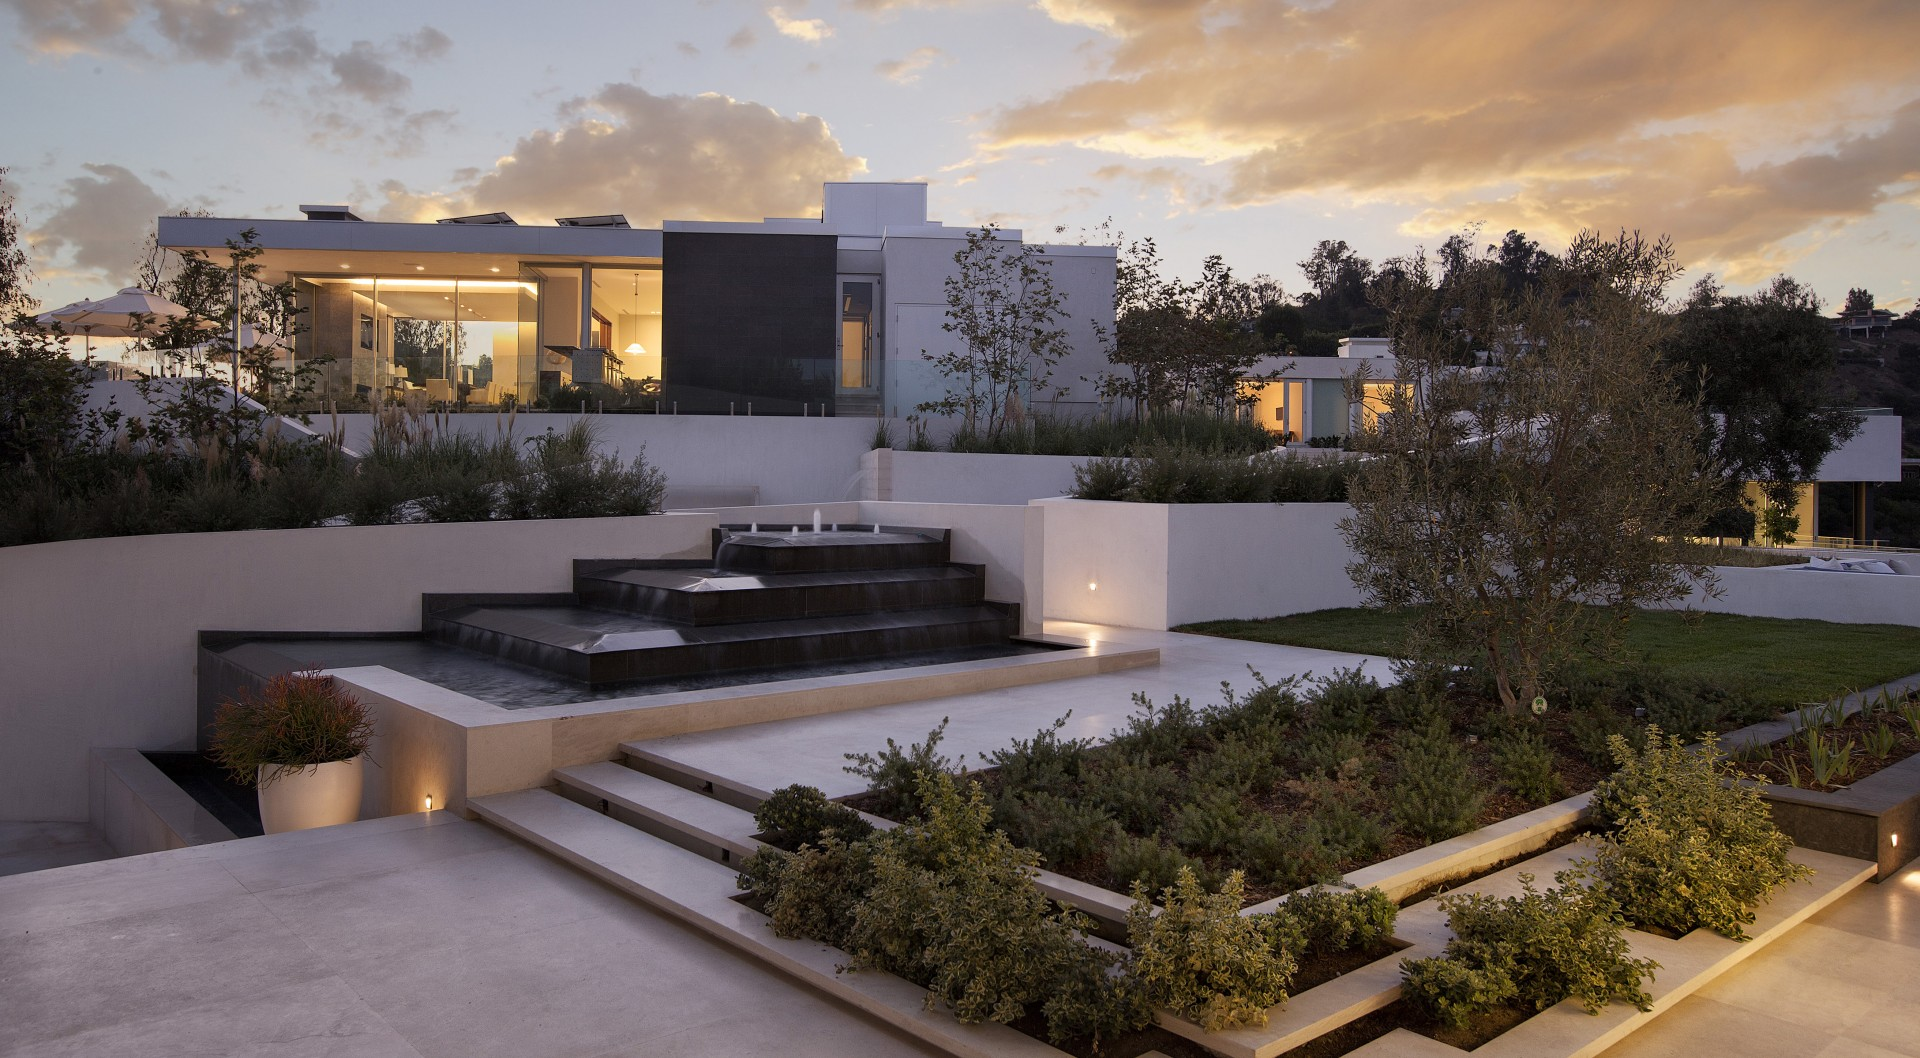 Los angeles laguna beach architecture projects mcclean design